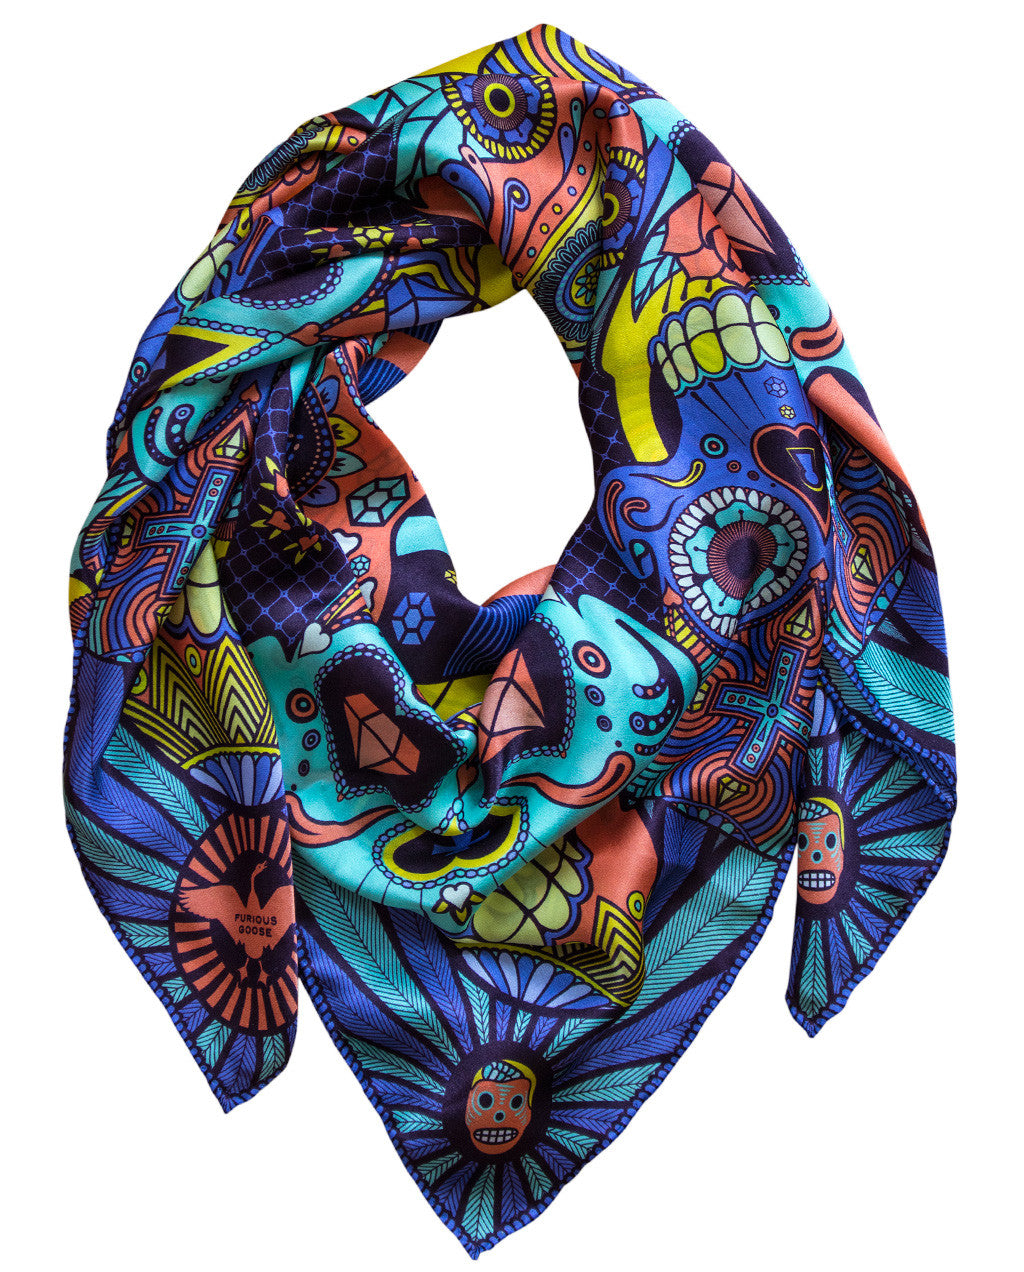 Luxury Silk Scarf, Silk Scarves UK, Satin Foulard, Brighton, London, Mayfair, Gift Ideas for her for him